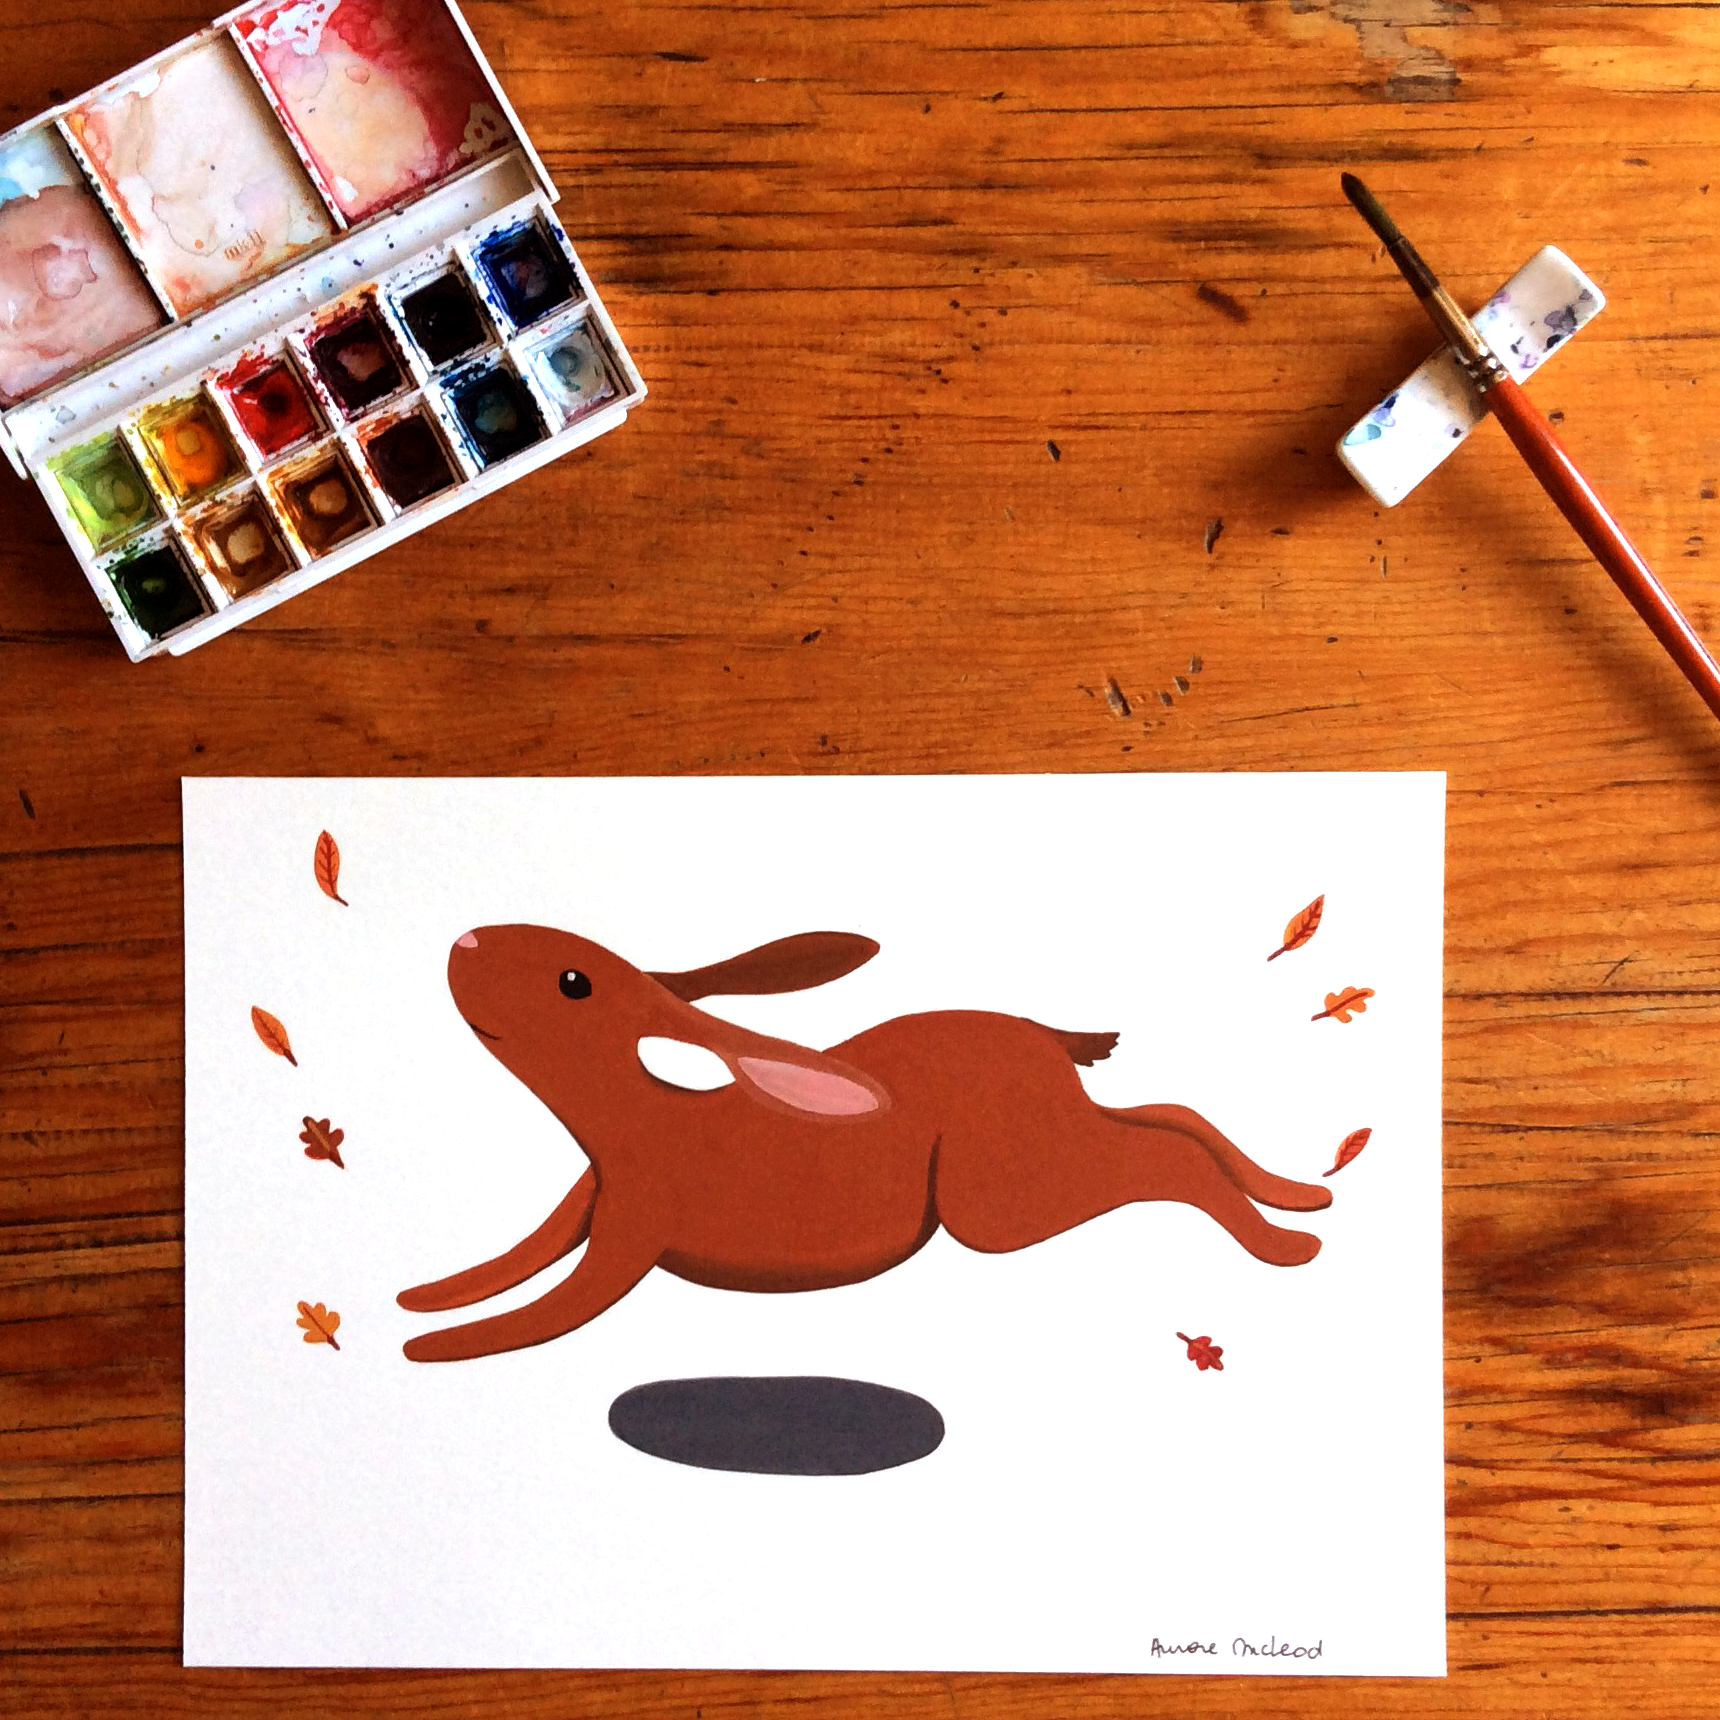 Original rabbit watercolour art